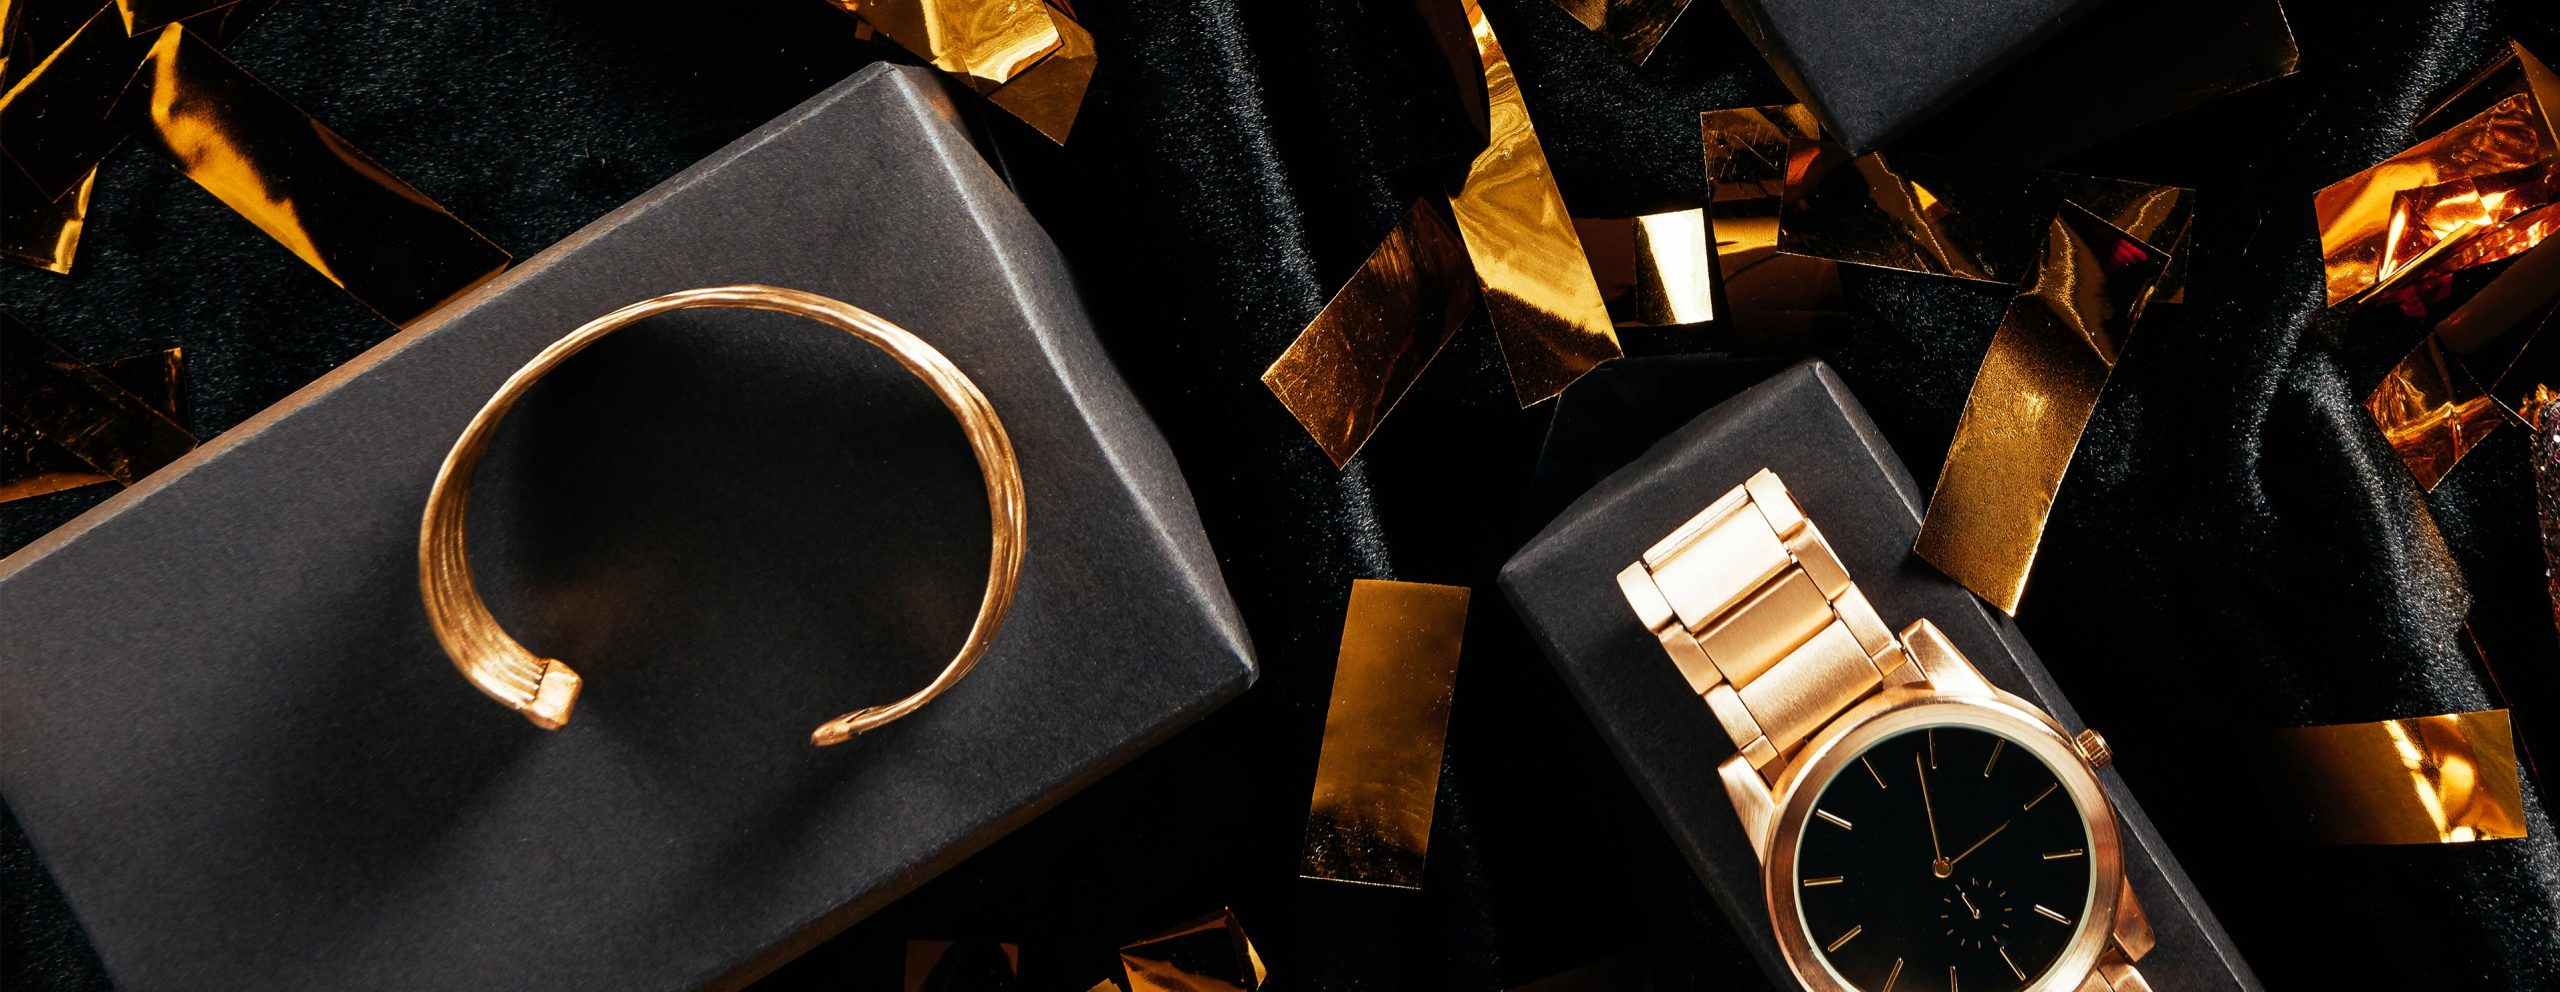 Gold watches and other expensive gold jewellery to be pawned for fast cash.